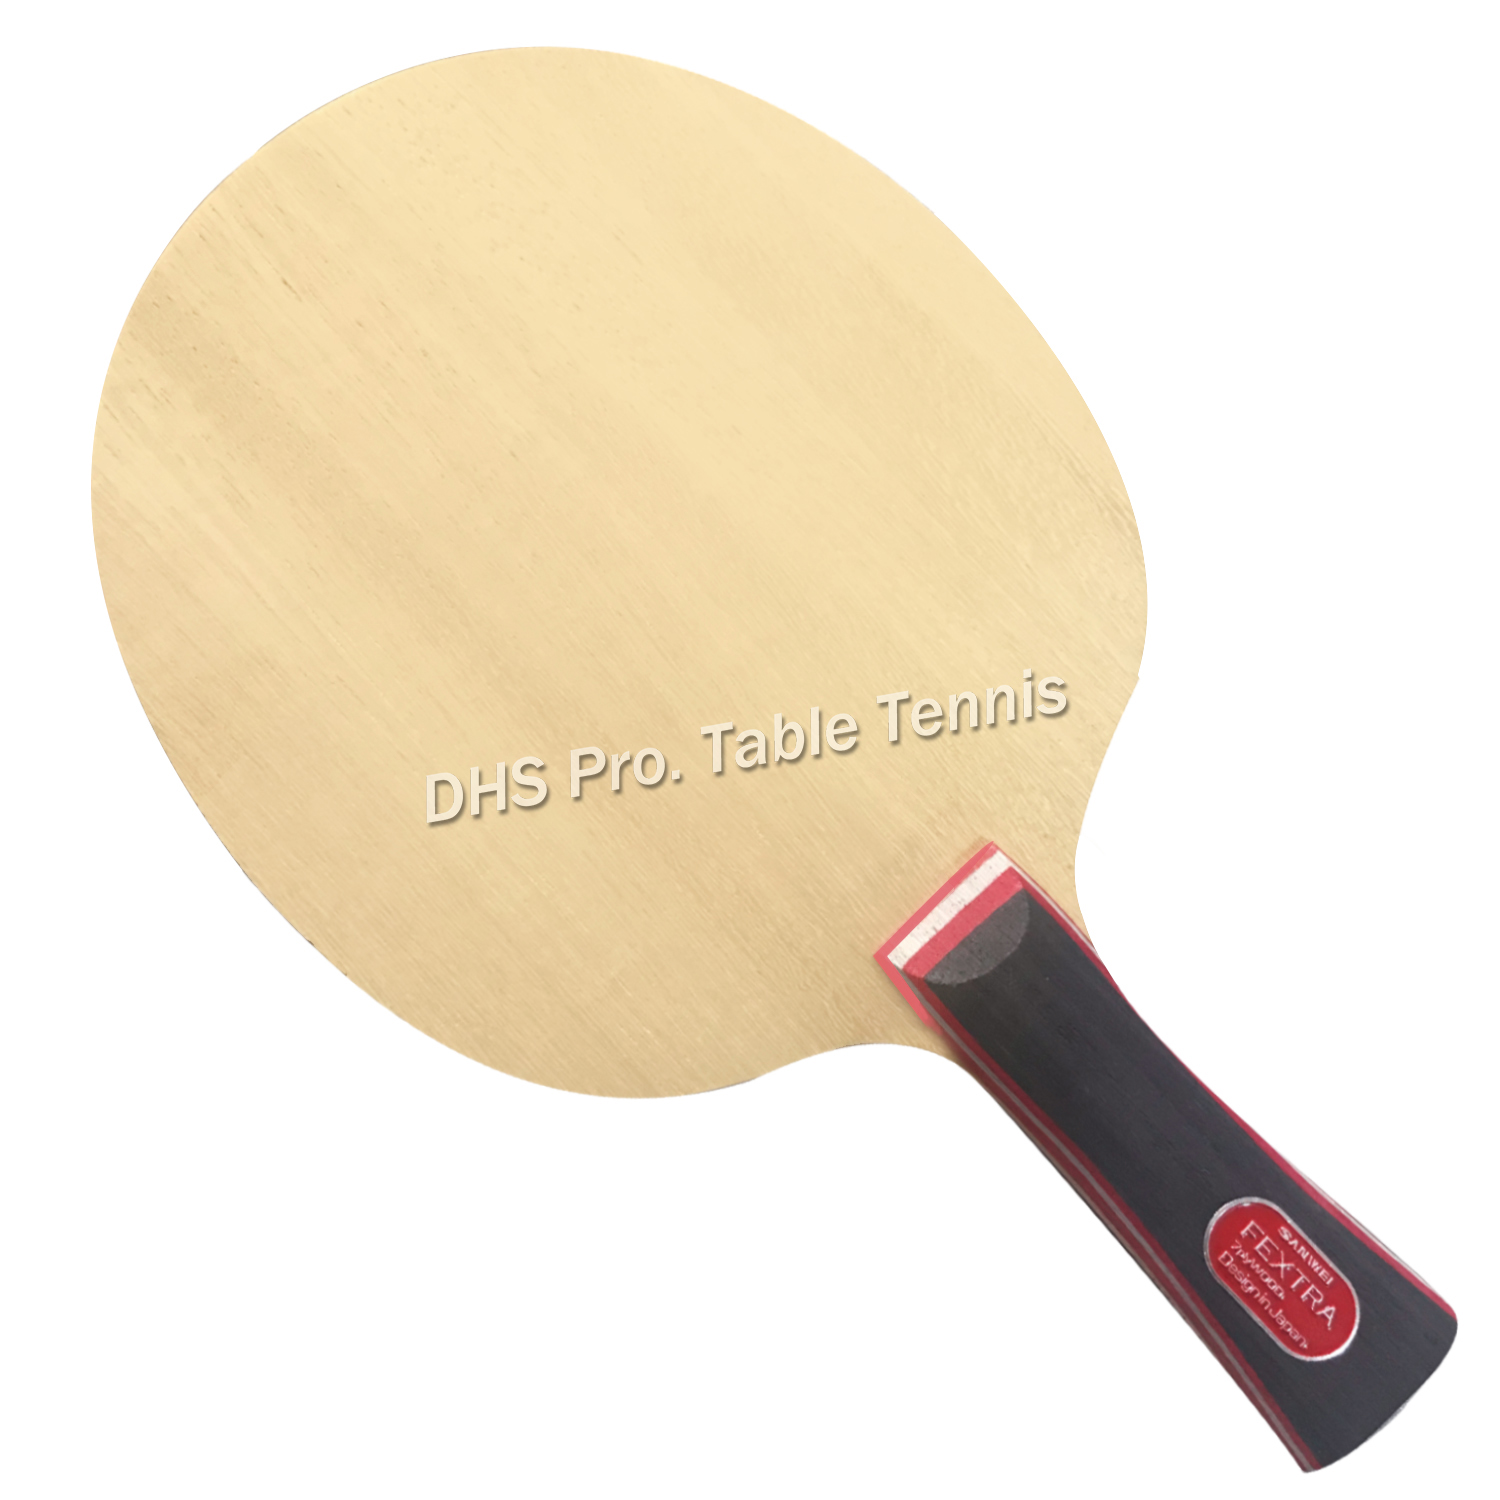 Sanwei FEXTRA 7 Nordic VII Table Tennis Blade 7 Ply Wood, Japan Tech, STIGA Clipper CL Structure) Racket Ping Pong Bat